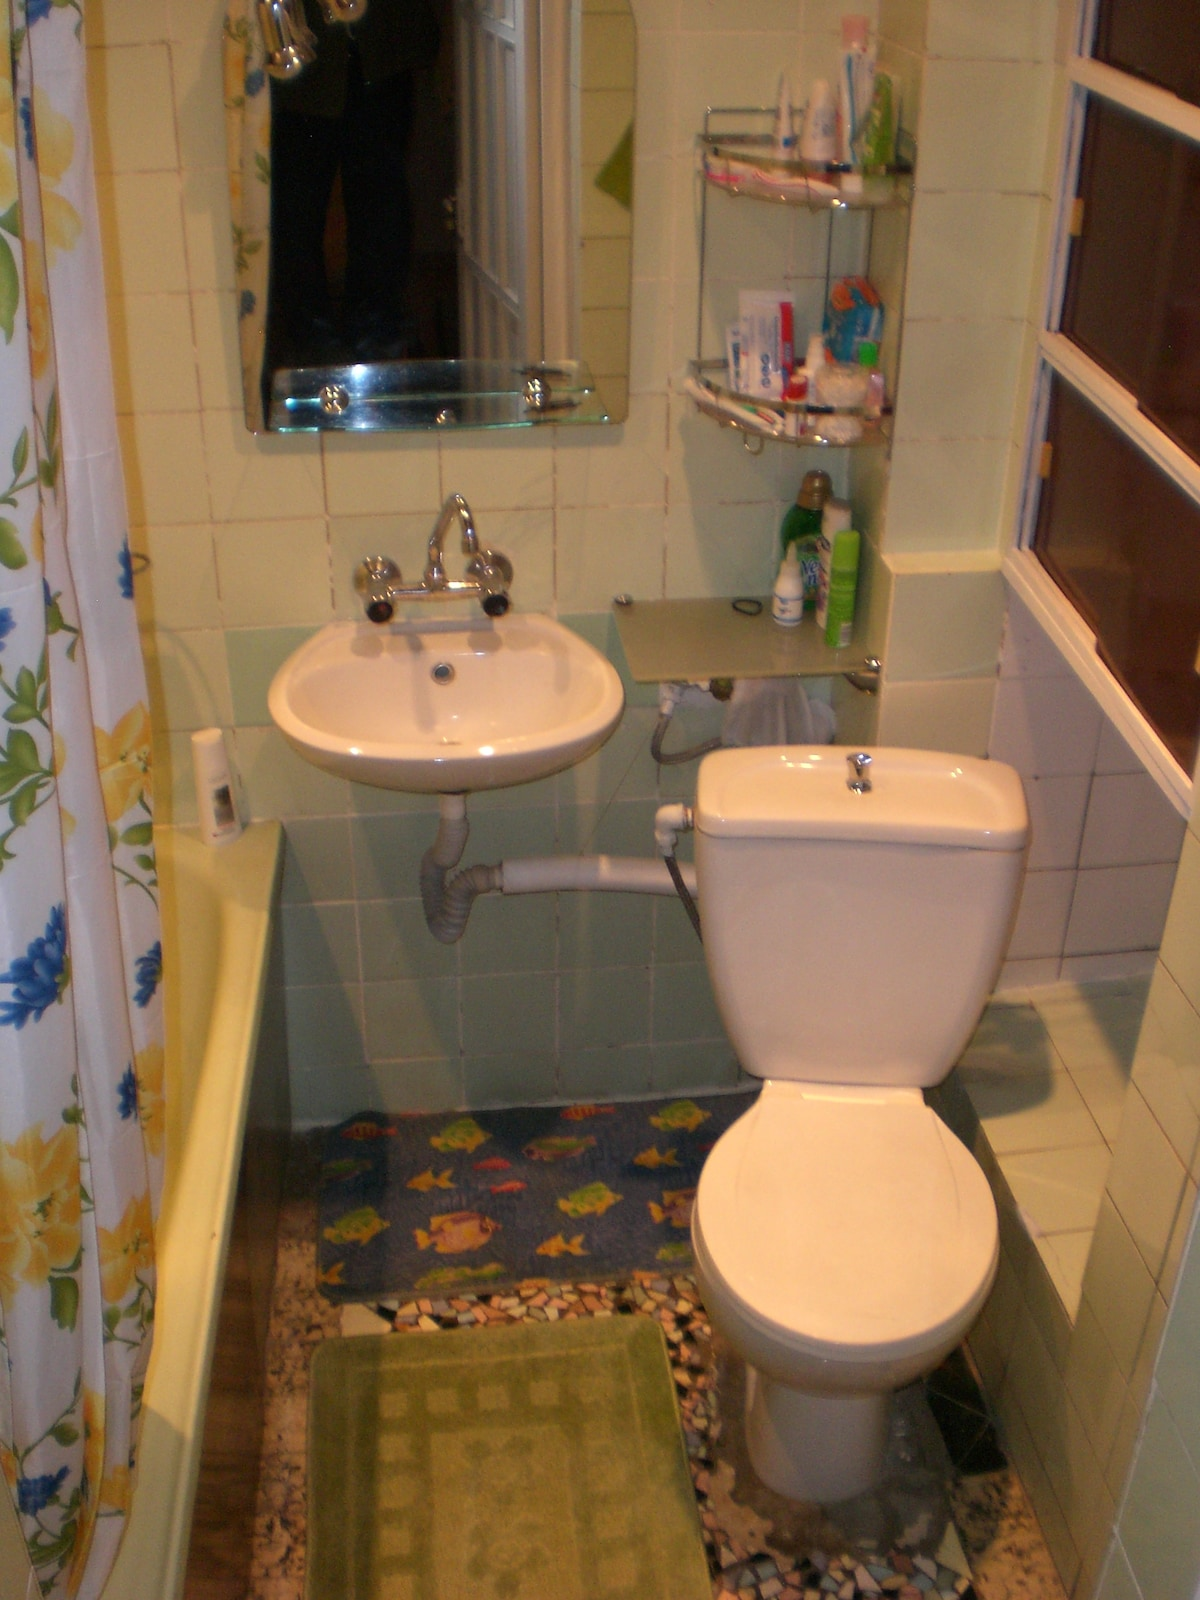 Guests' bathroom (Separate, hosts use another one)